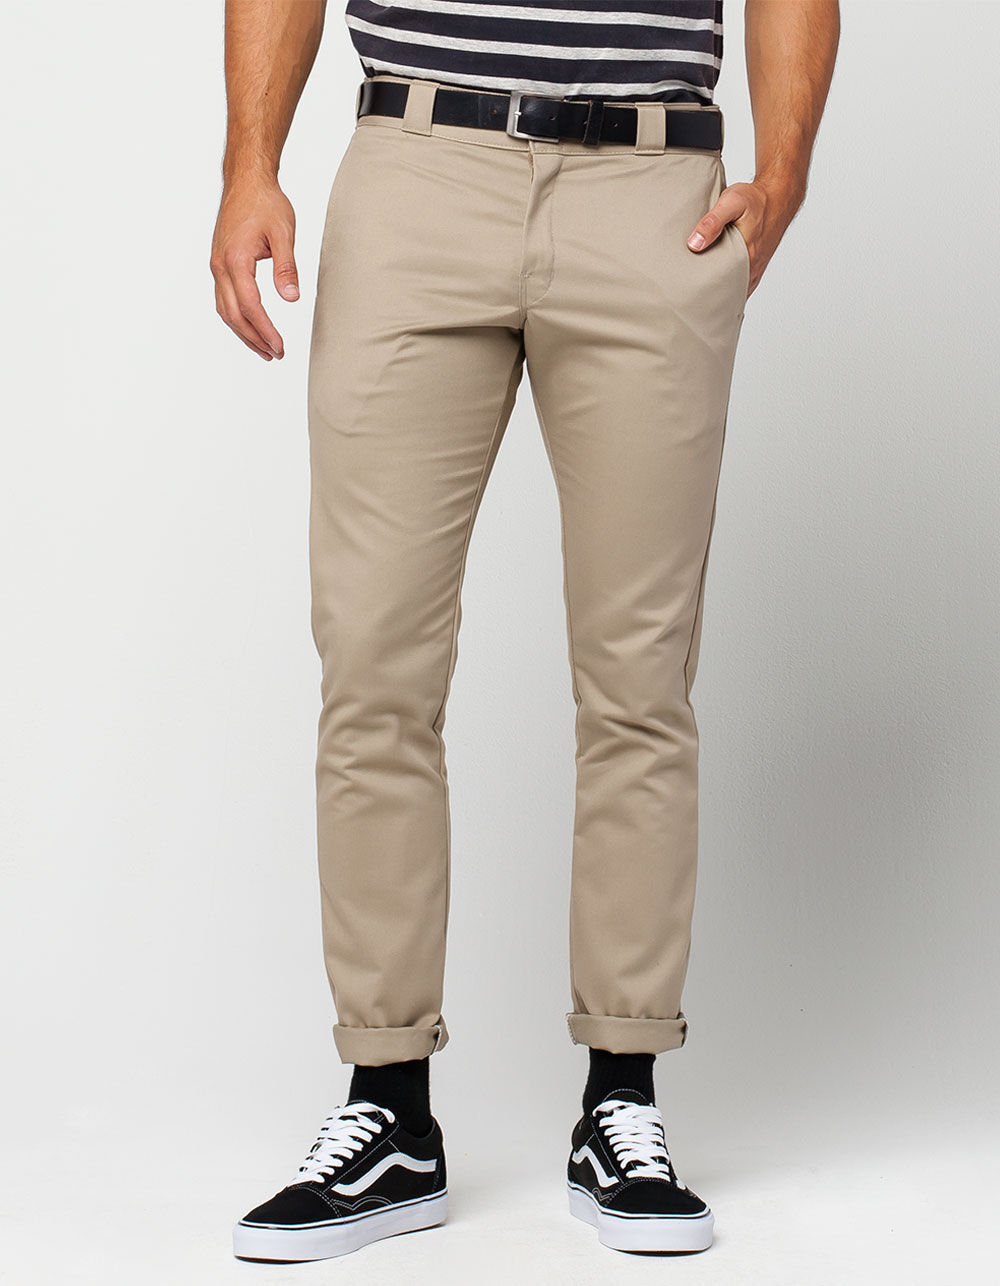 DICKIES 801 Mens Skinny Straight Pants